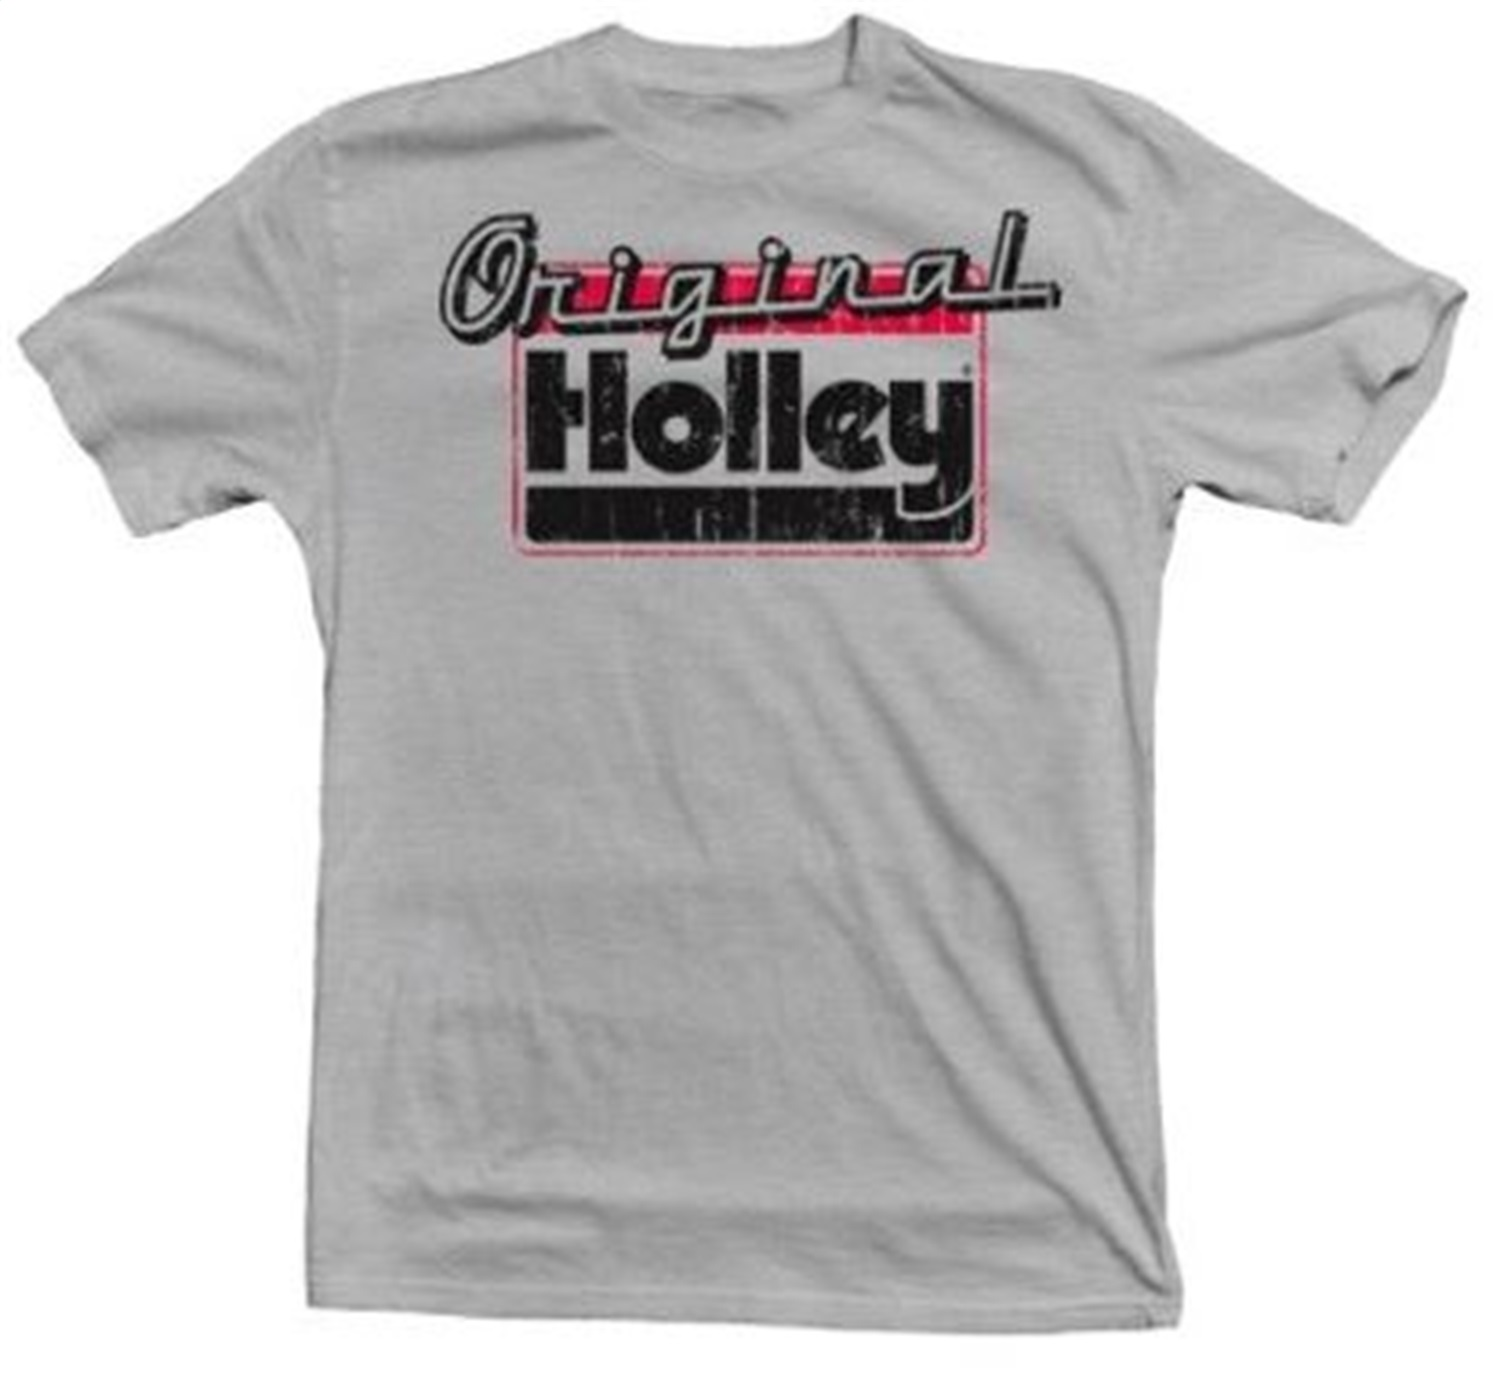 Holley 10022-XXXLHOL Holley Equipped T-Shirt